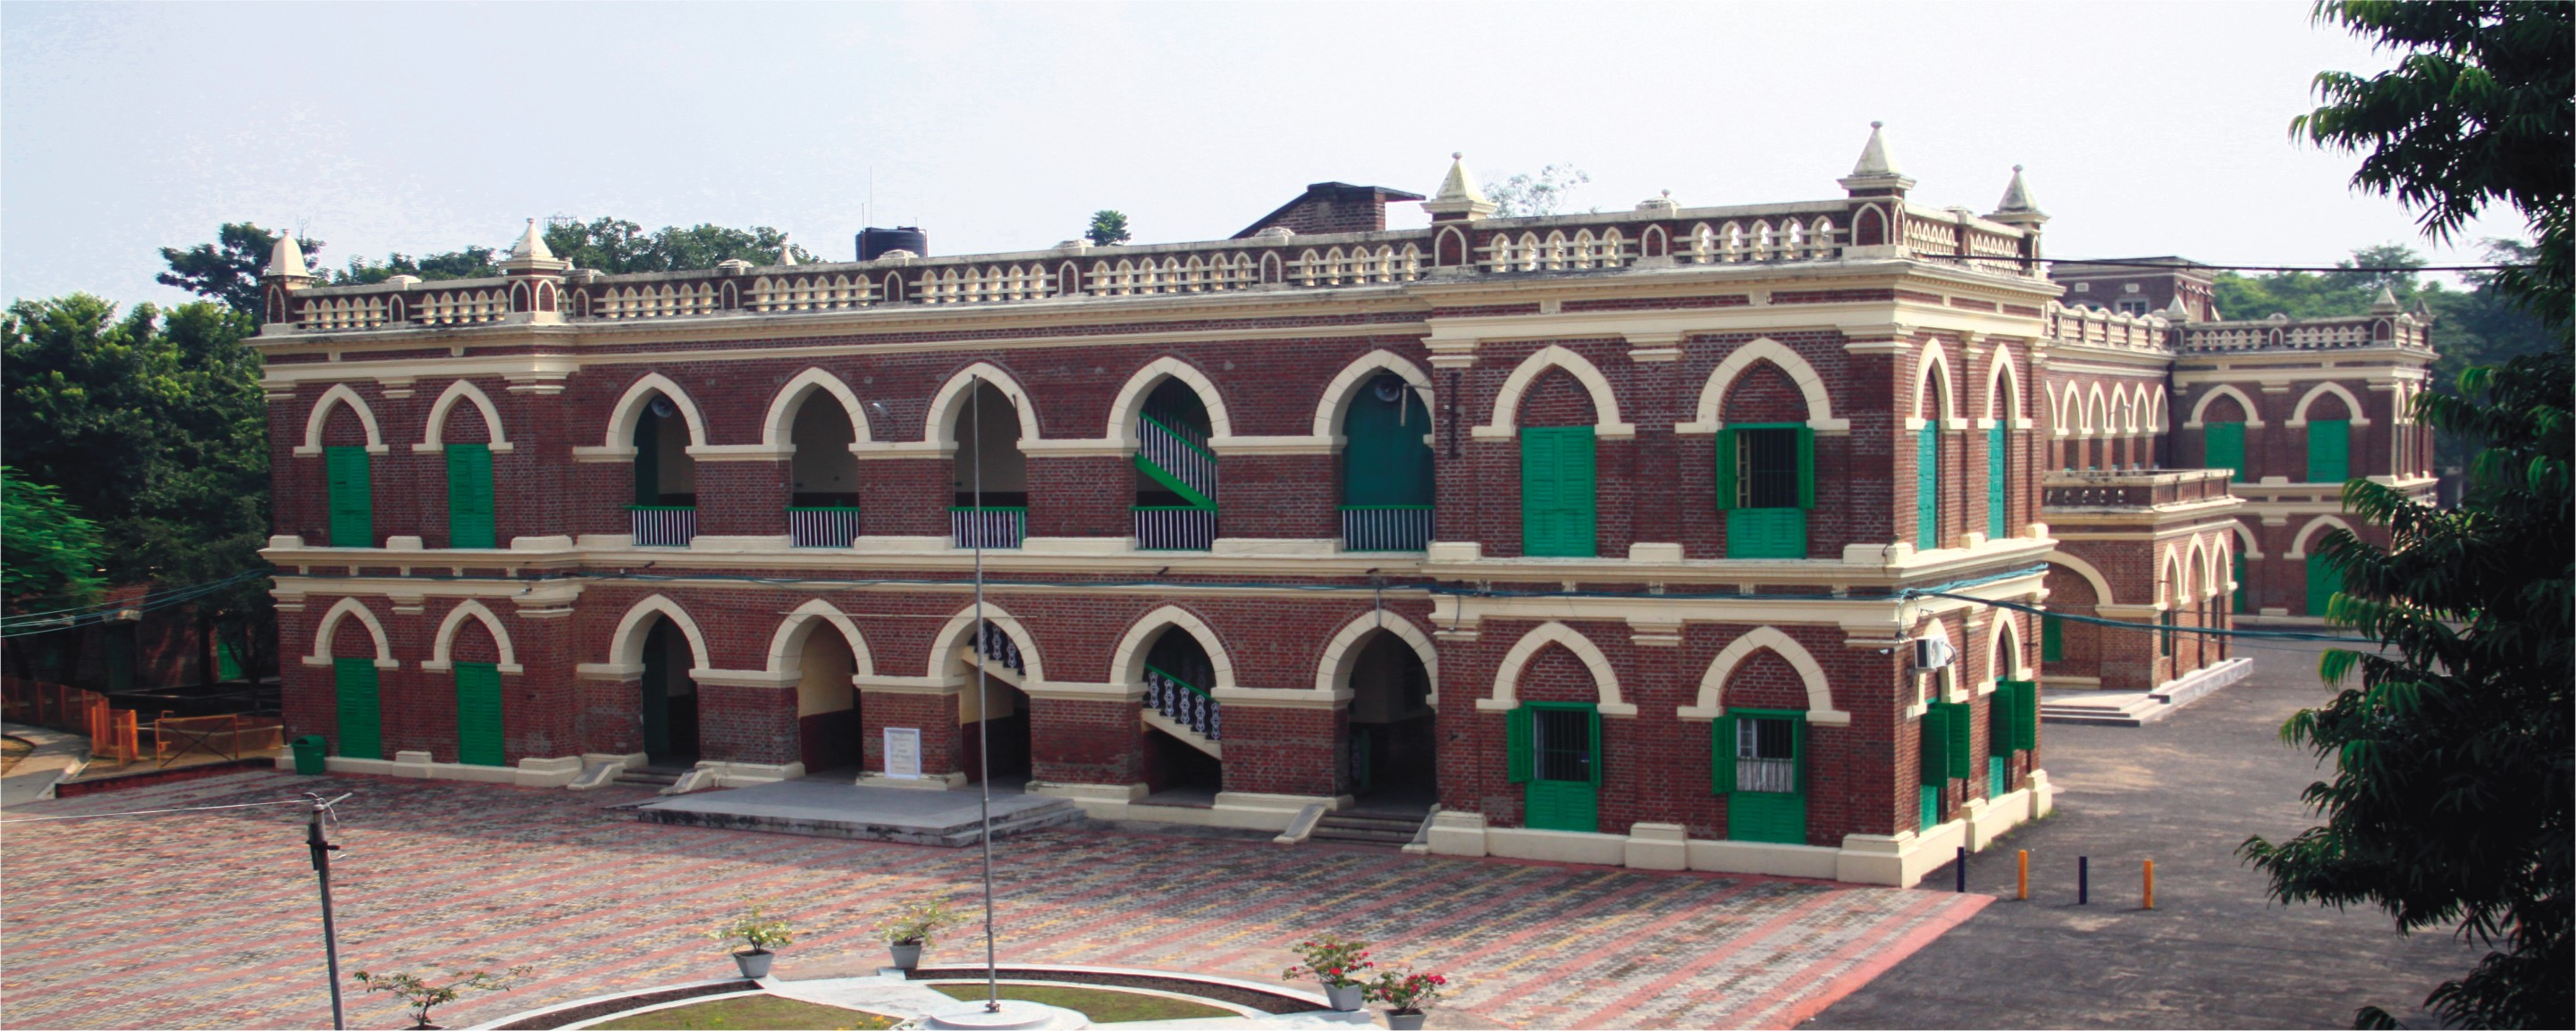 St. Vincent's Higher Secondary School, Asansol